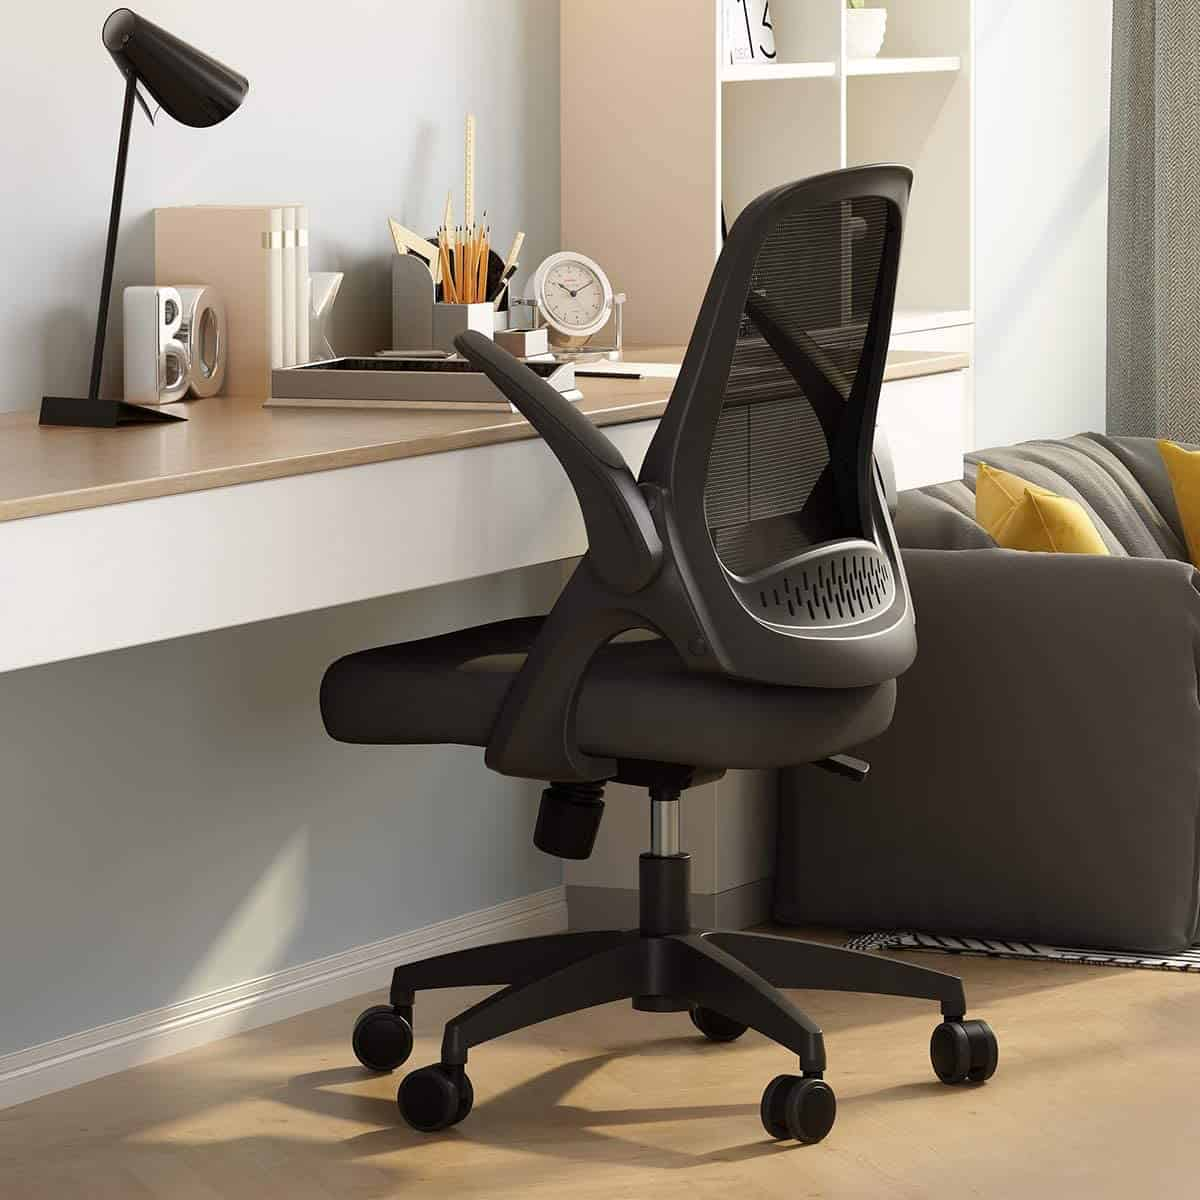 Top 10 Best Home Office Chairs Reviewed In 2020